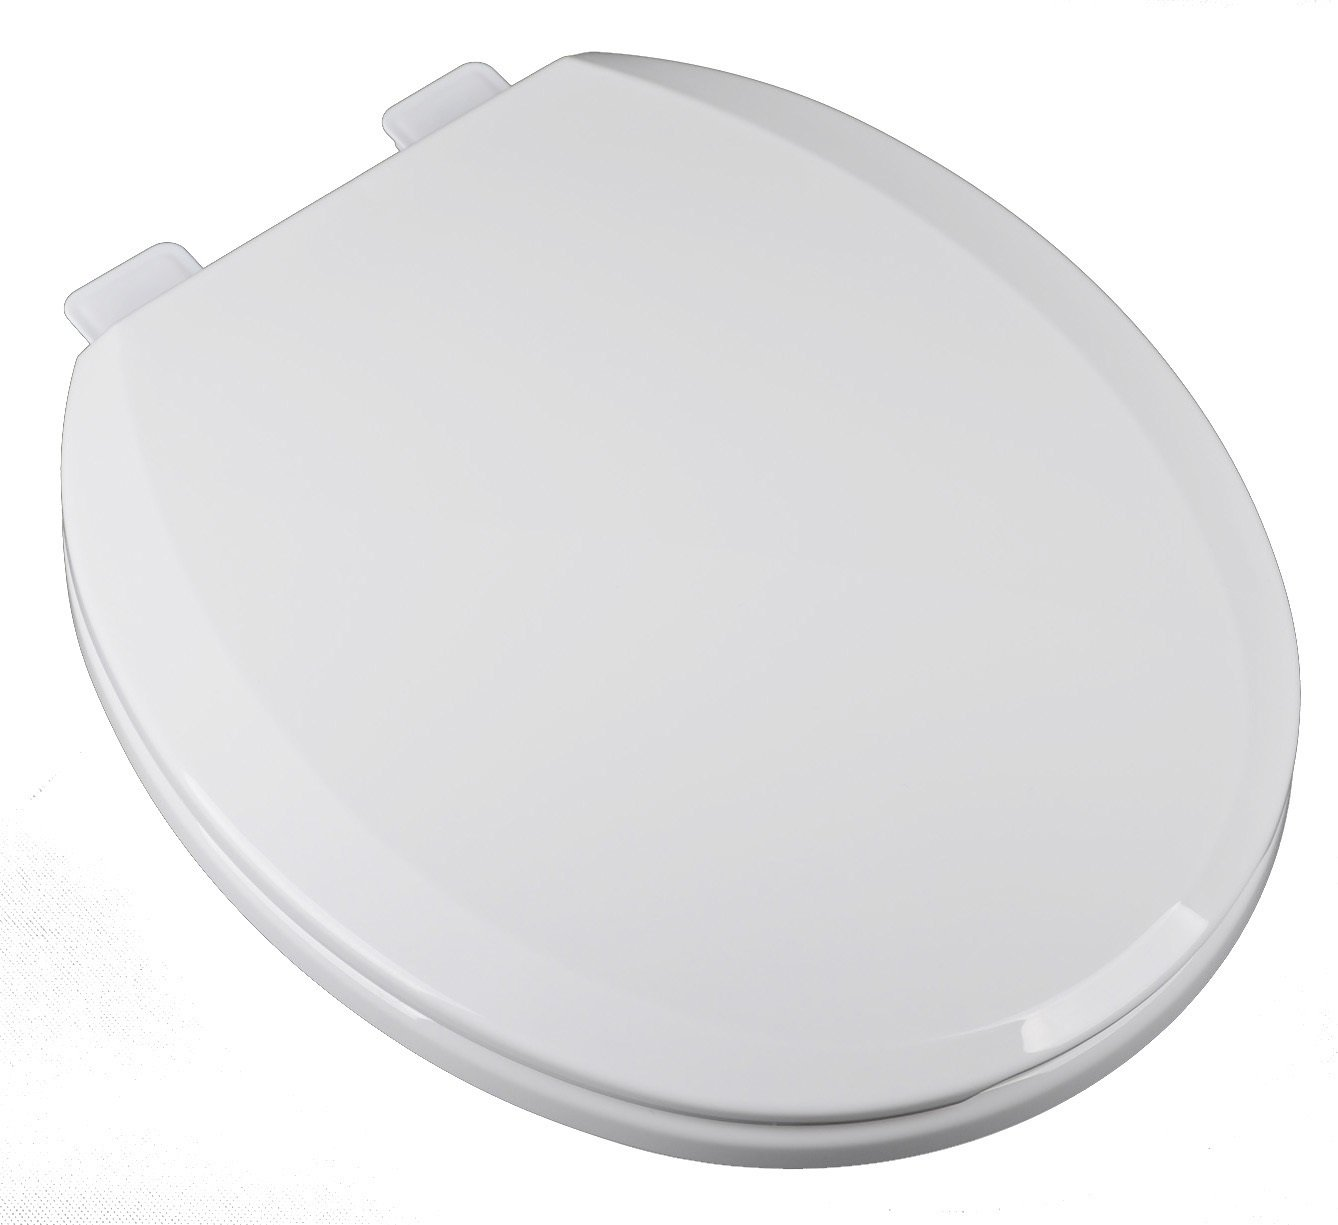 Bath Décor 2F1R7-00 Deluxe Slow Close Round Top Mount Toilet Seat with Adjustable Release and Clean Hinge